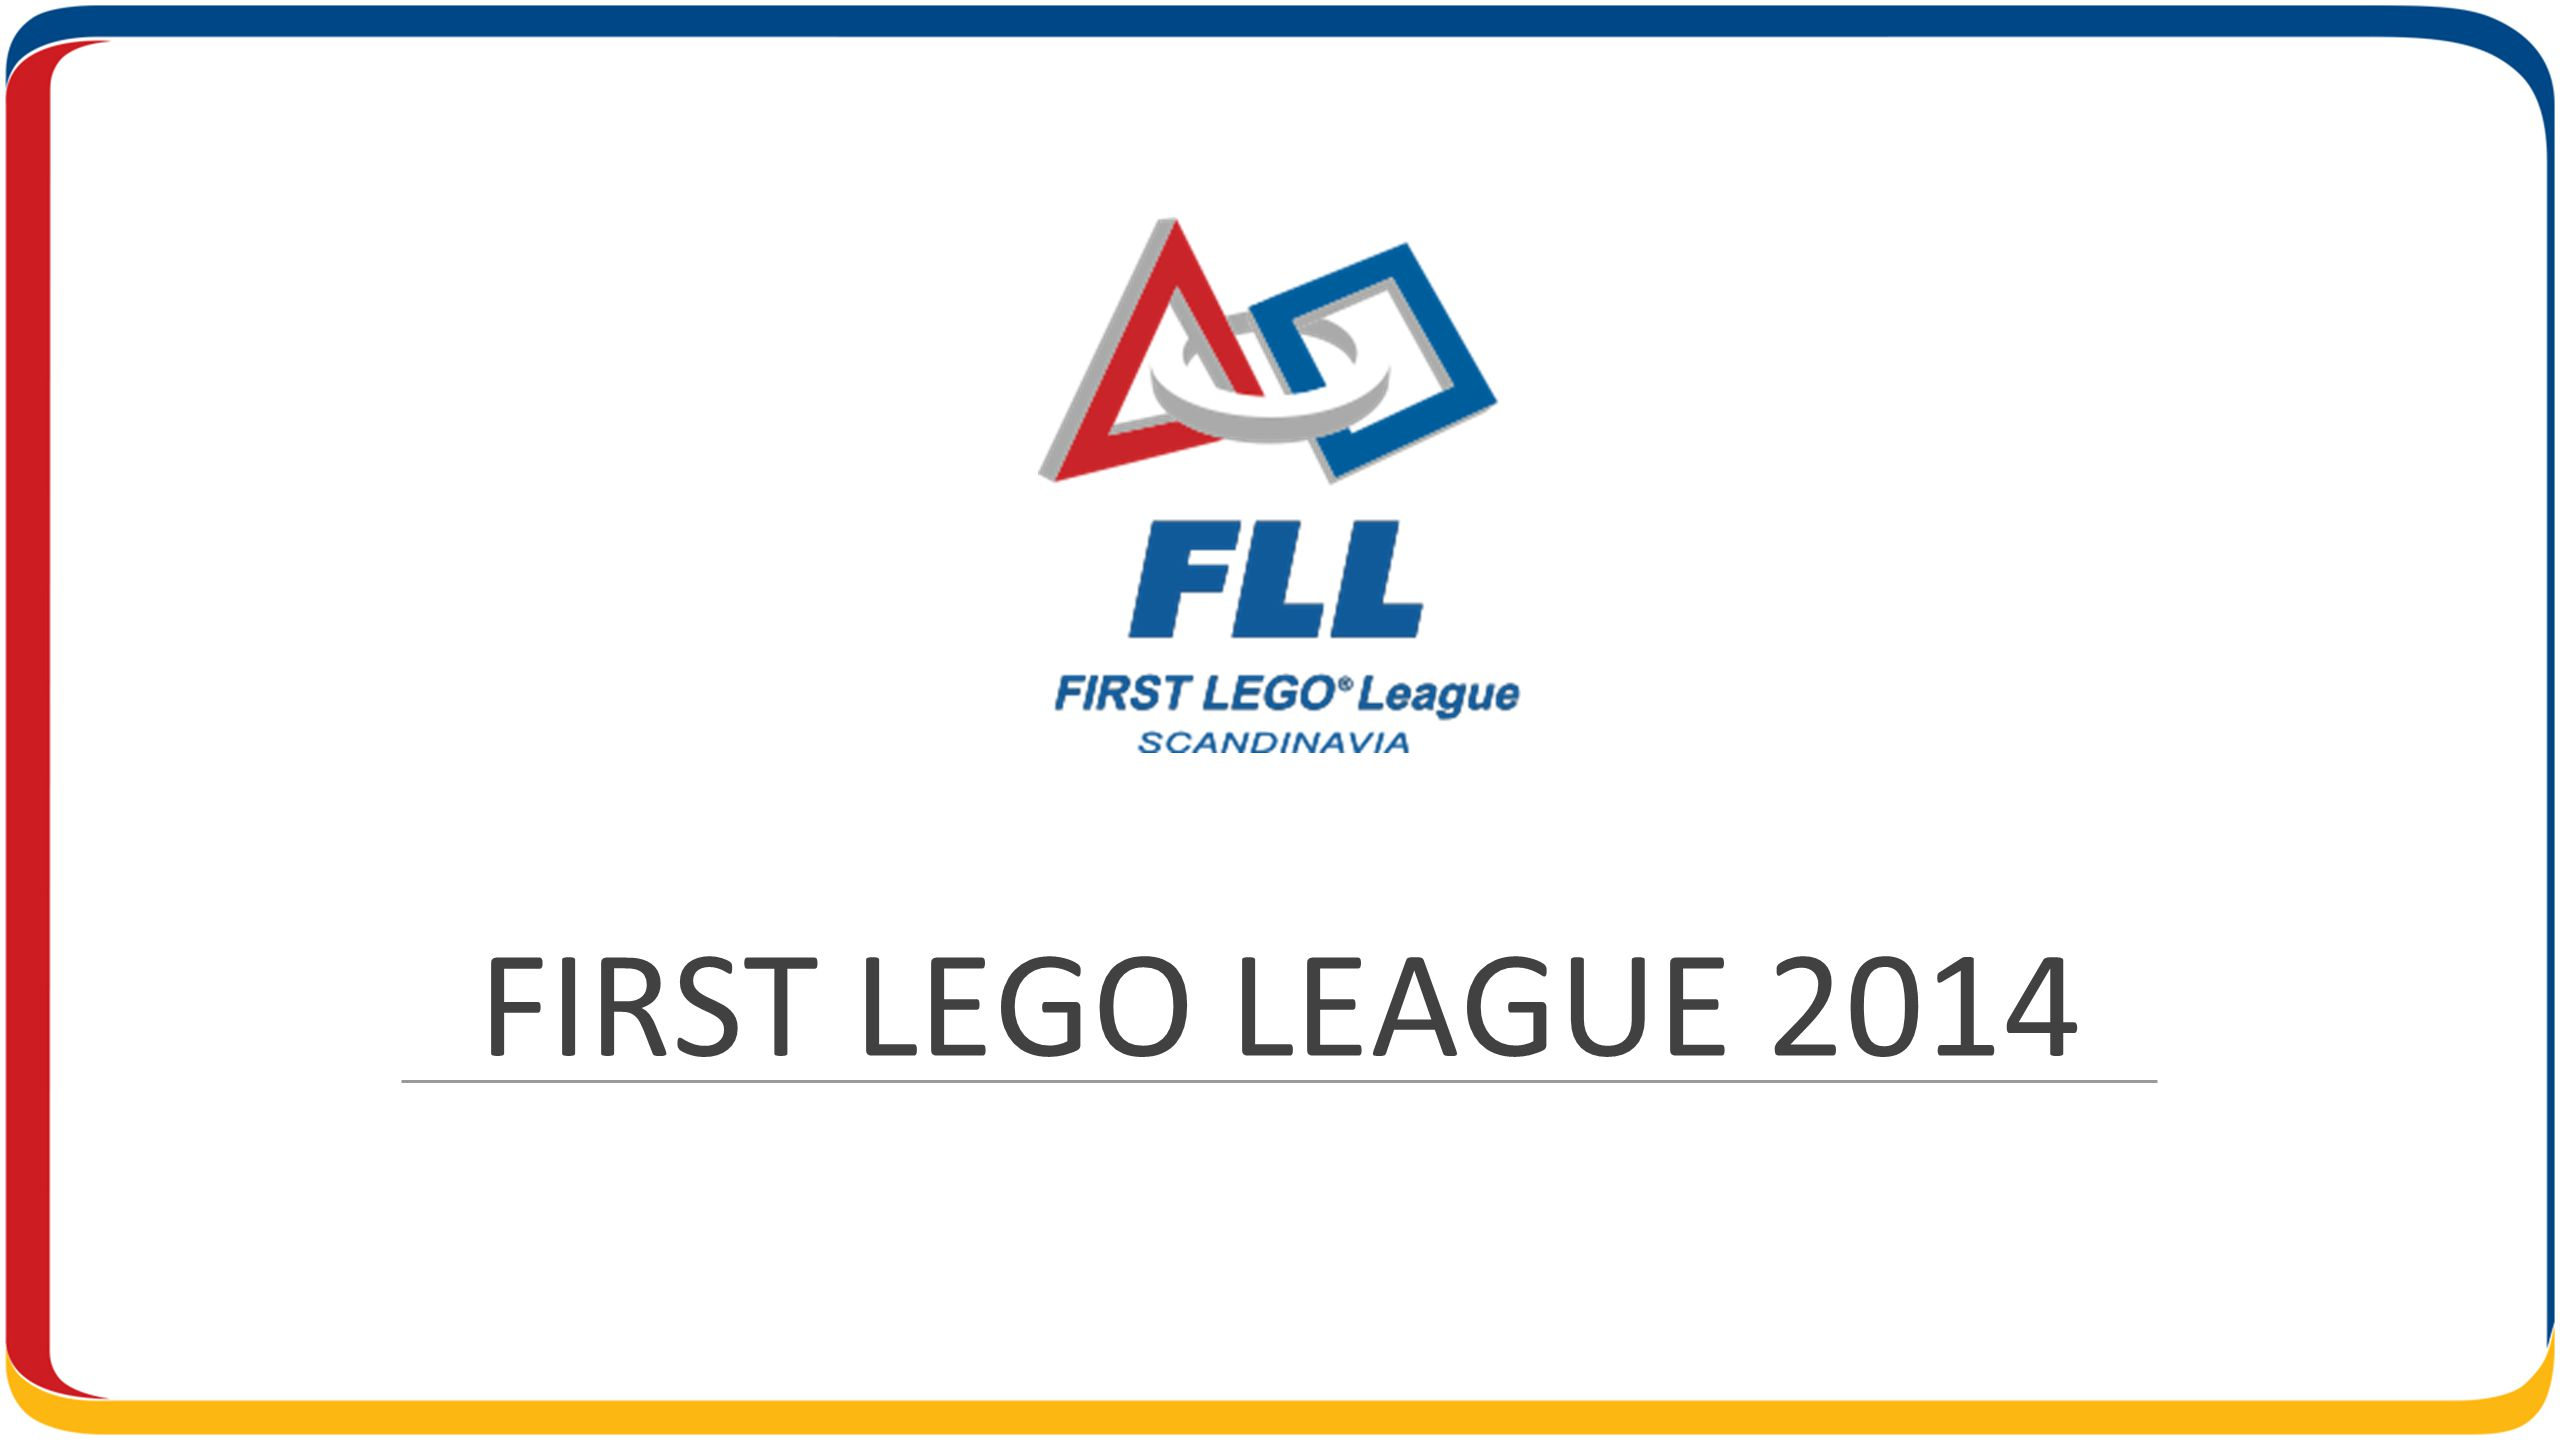 FIRST LEGO LEAGUE 2014